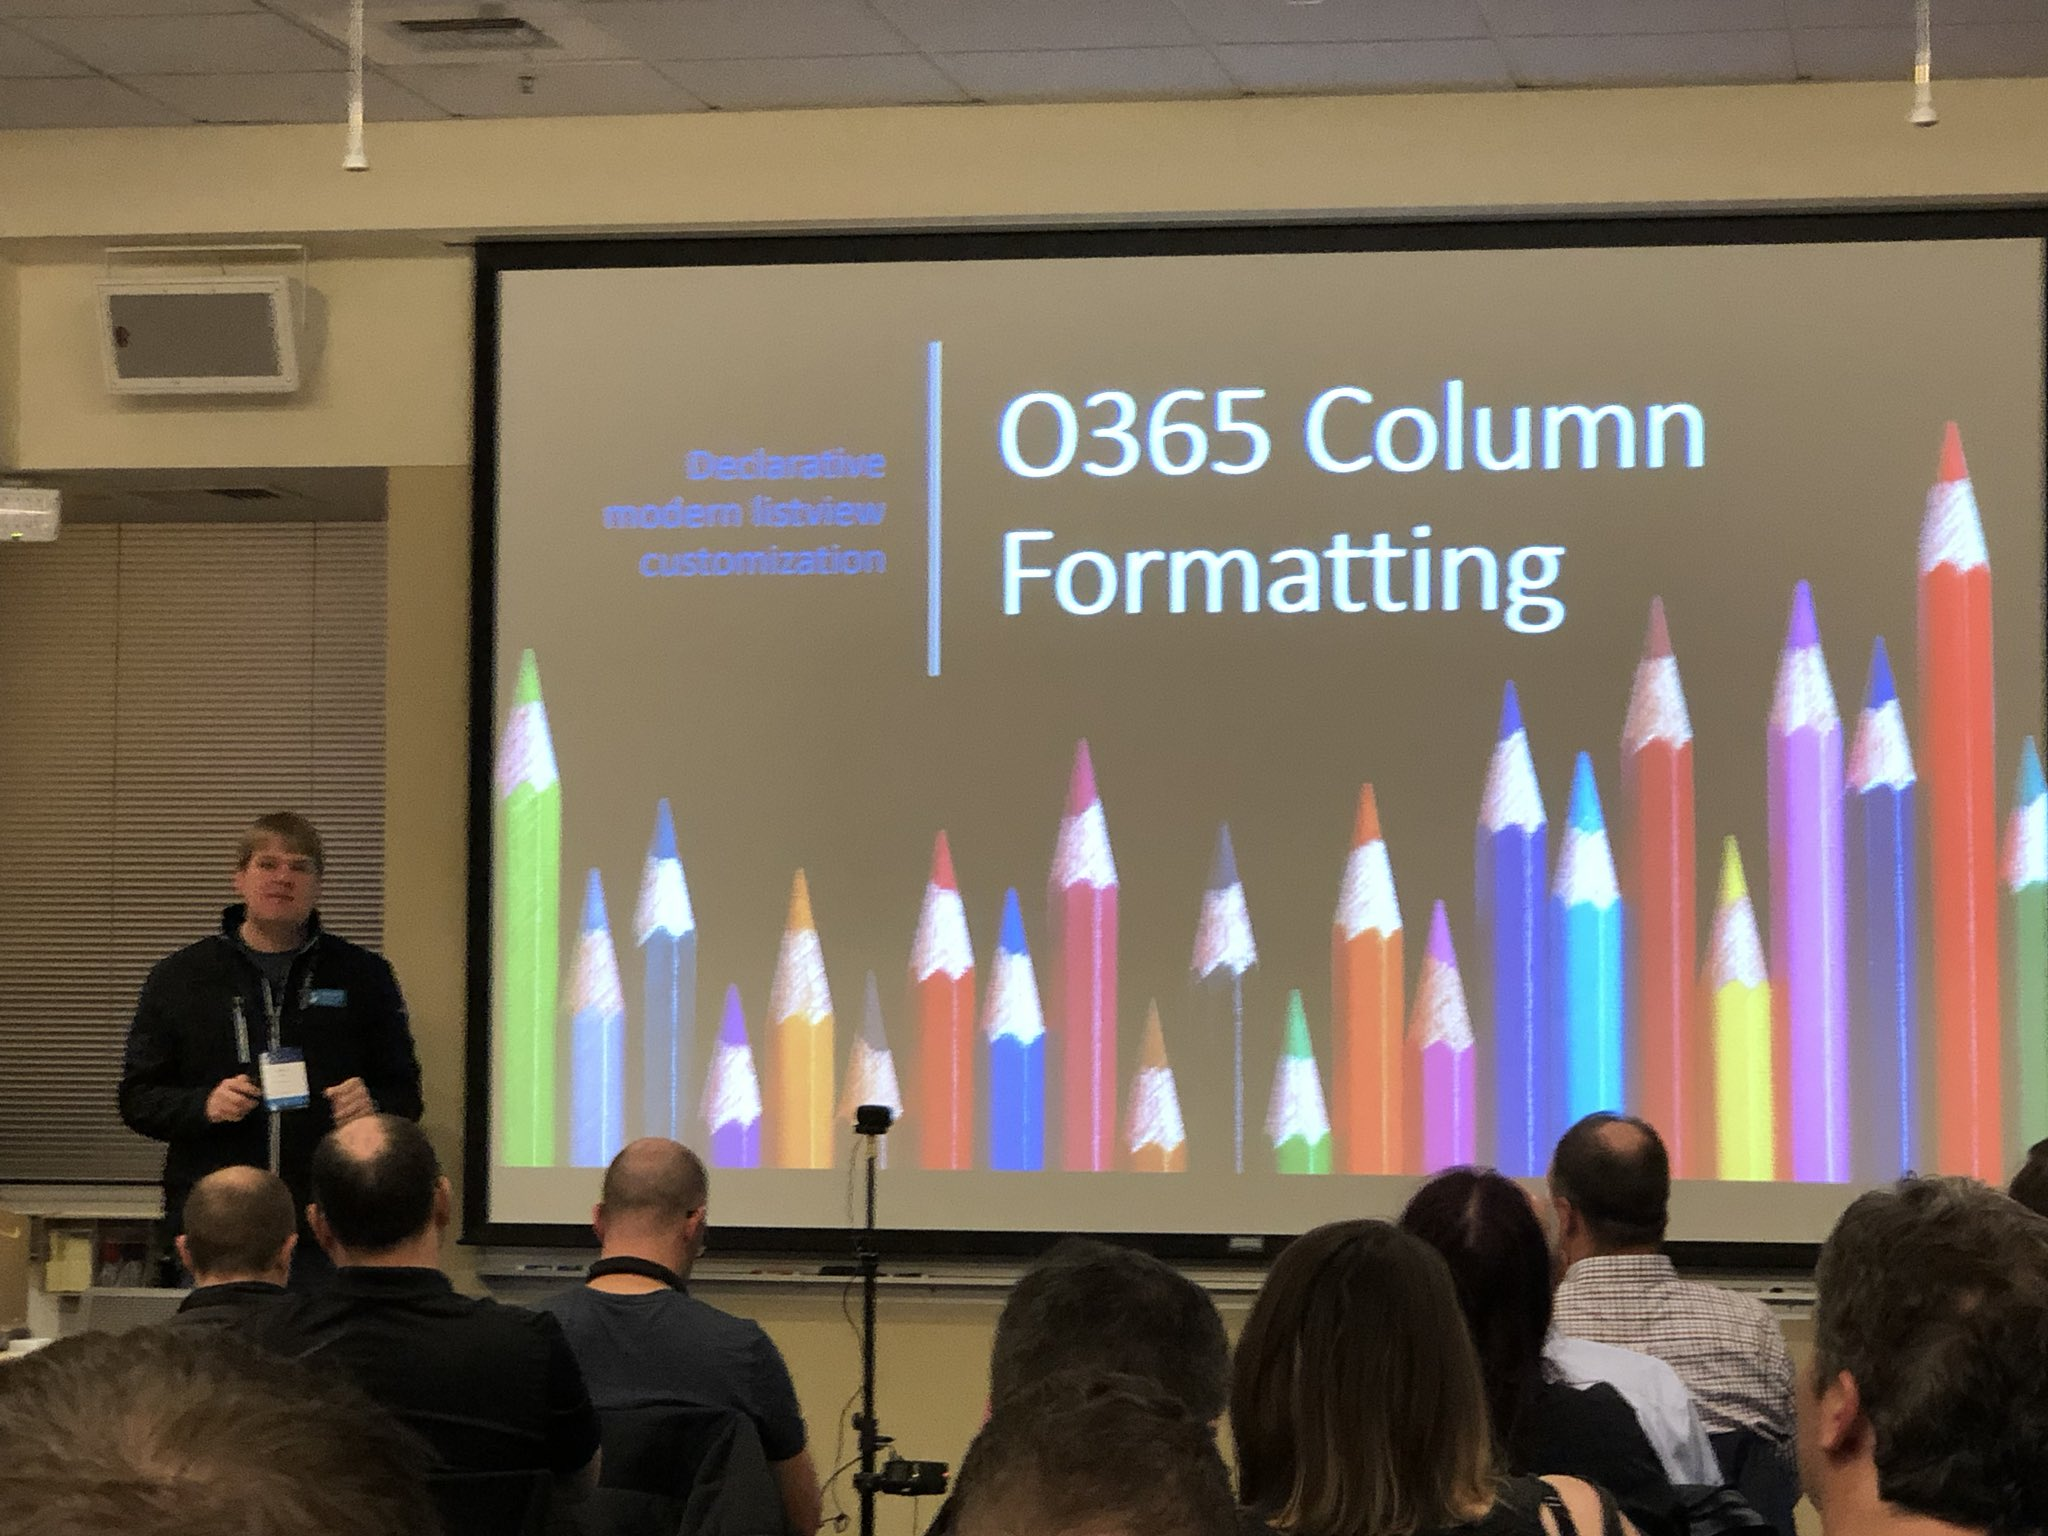 O365SeattlePresentation